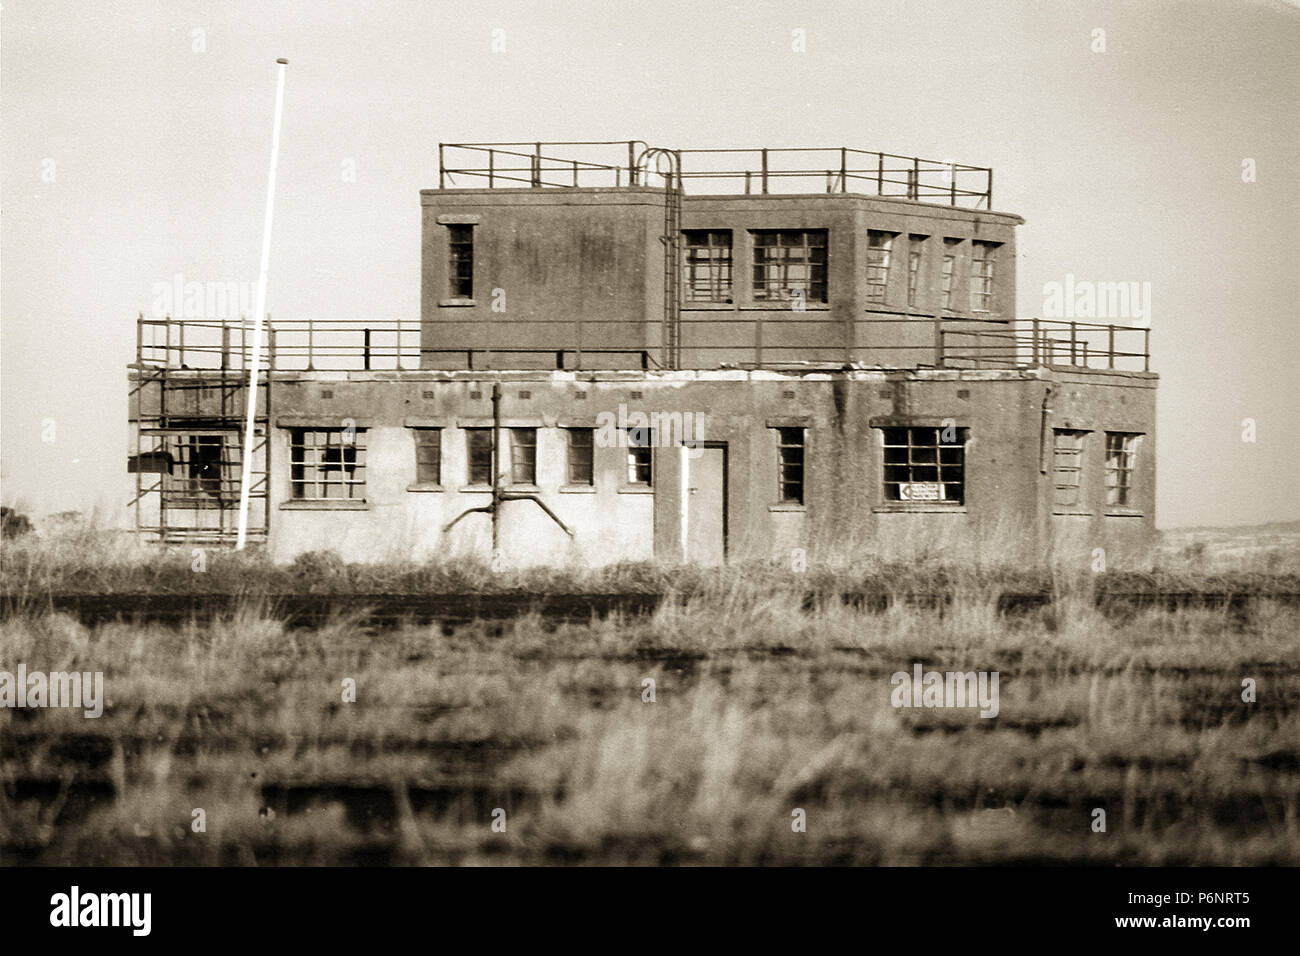 Control tower, USAAF Langford Lodge - Stock Image